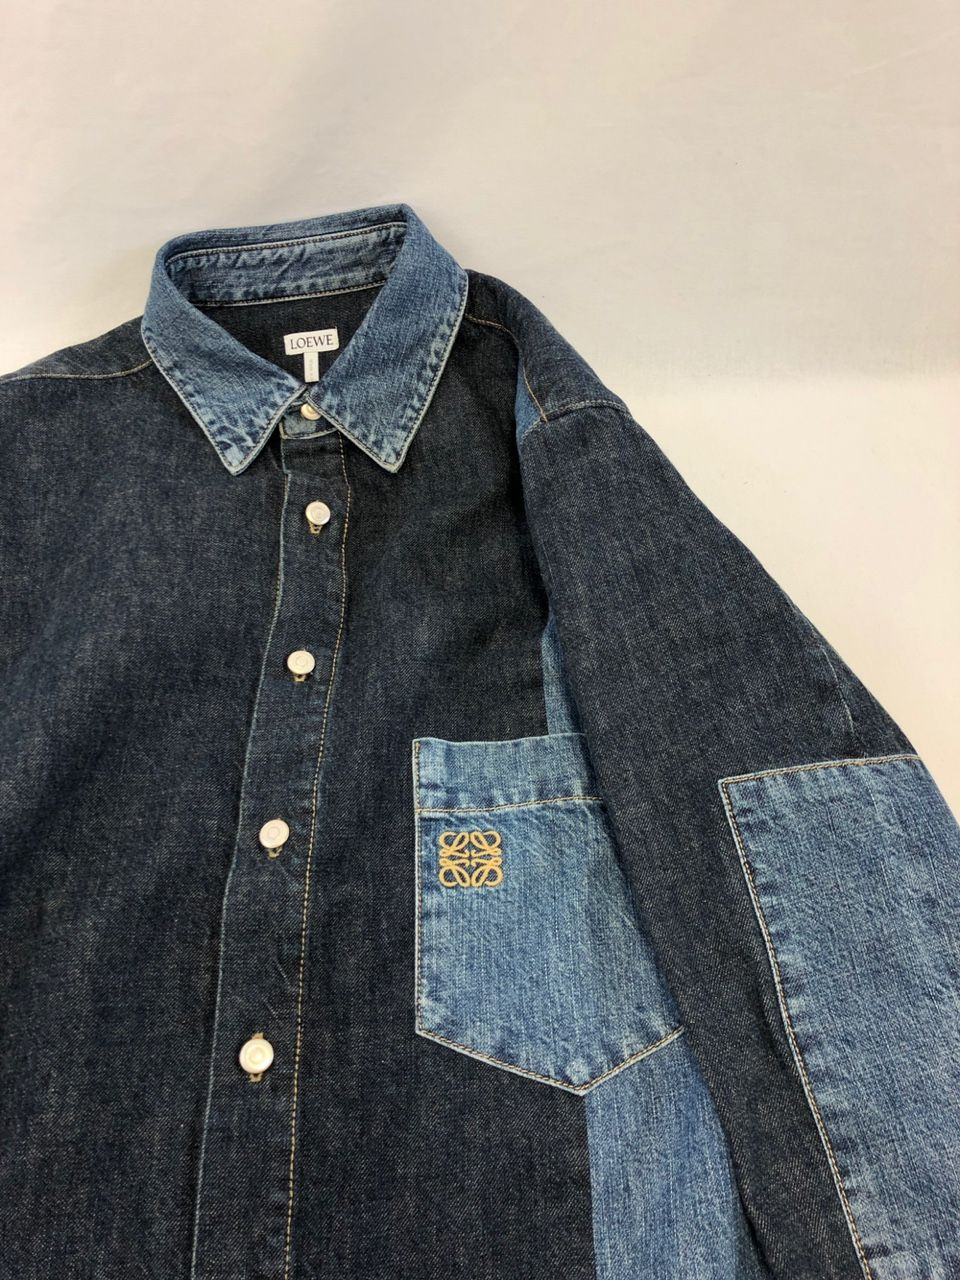 Loewe Patch pocket denim shirt P00446118